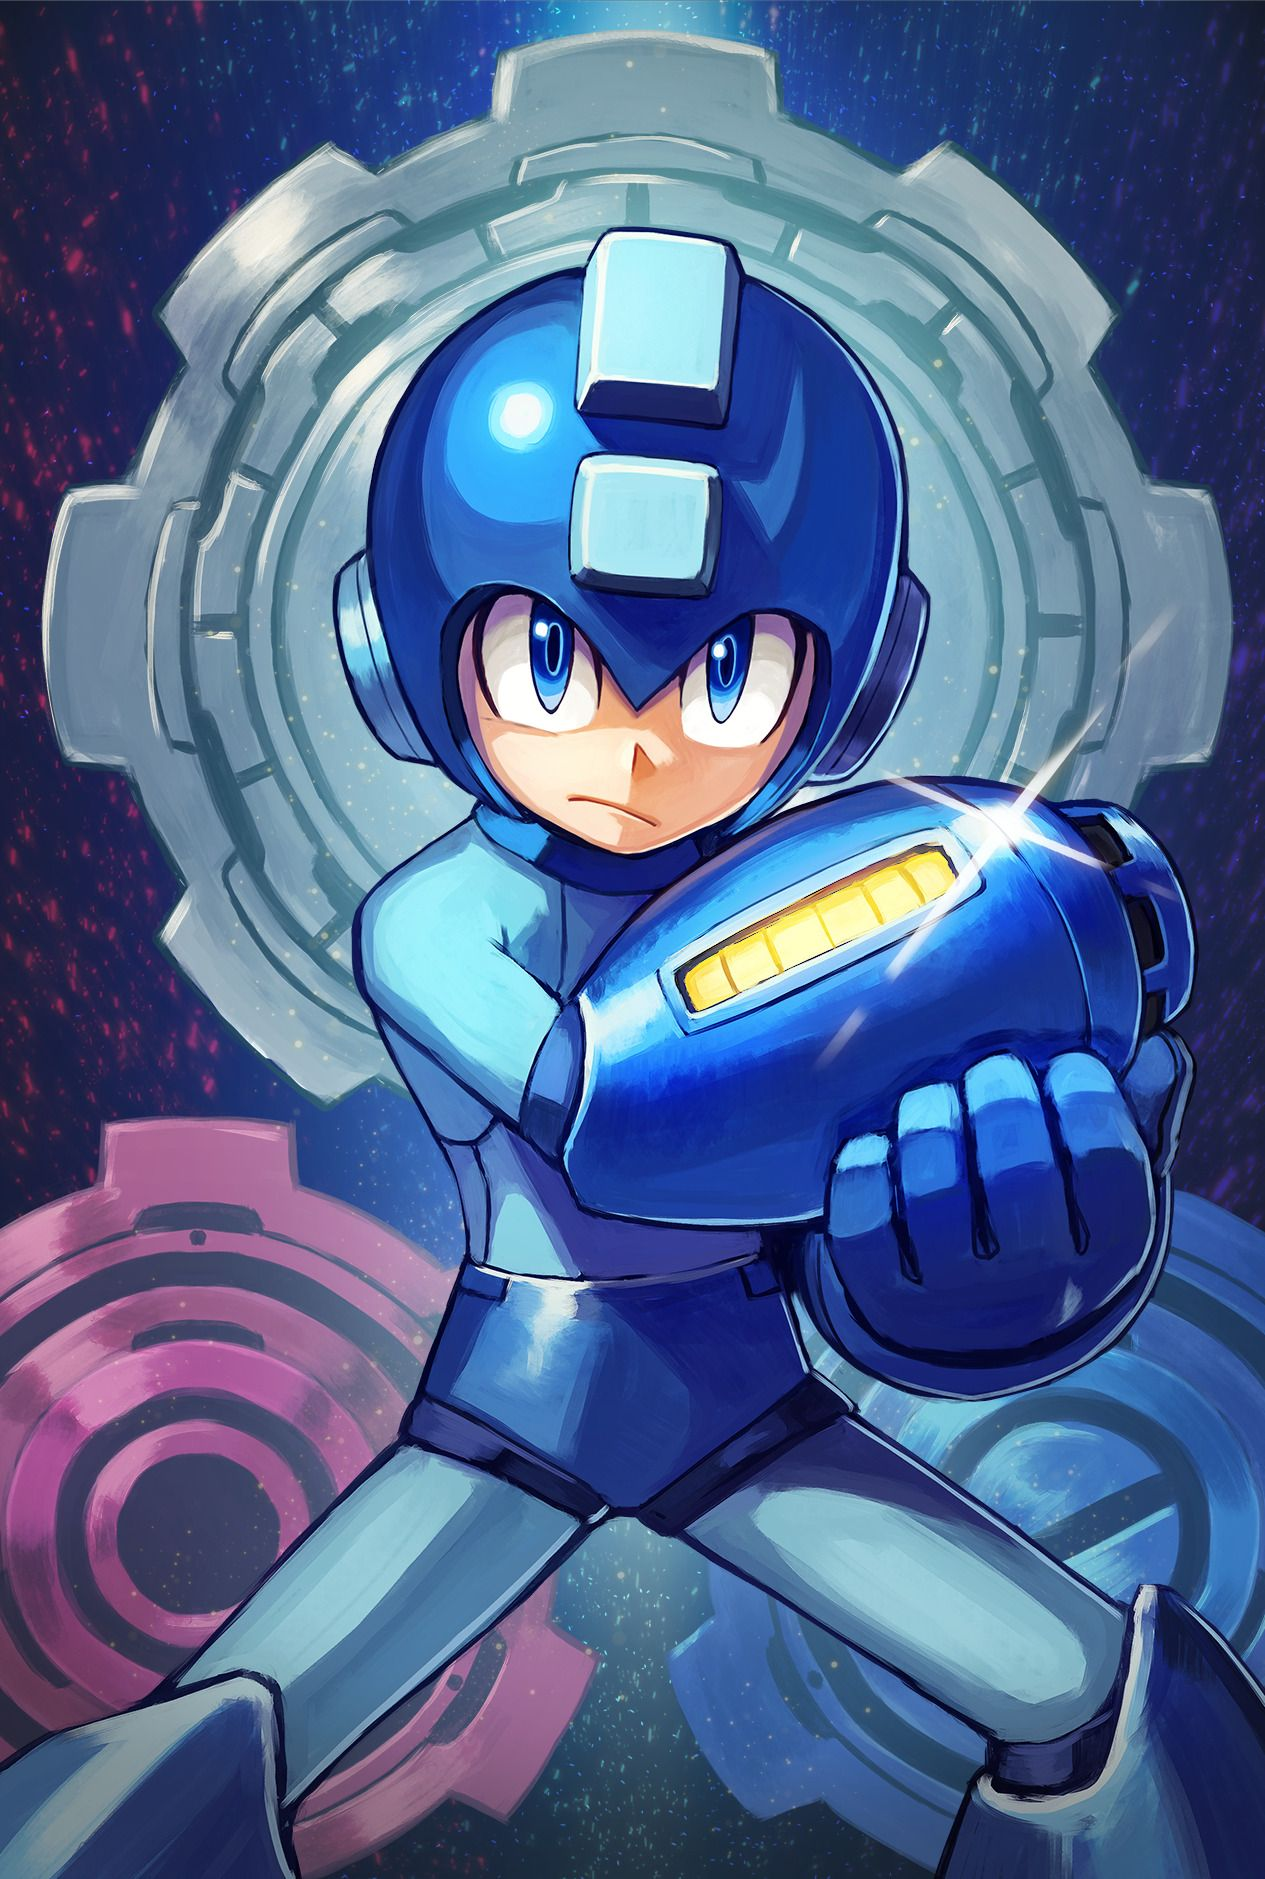 Graphite keiji inafune mega man third person shooter robots characters studio ghibli